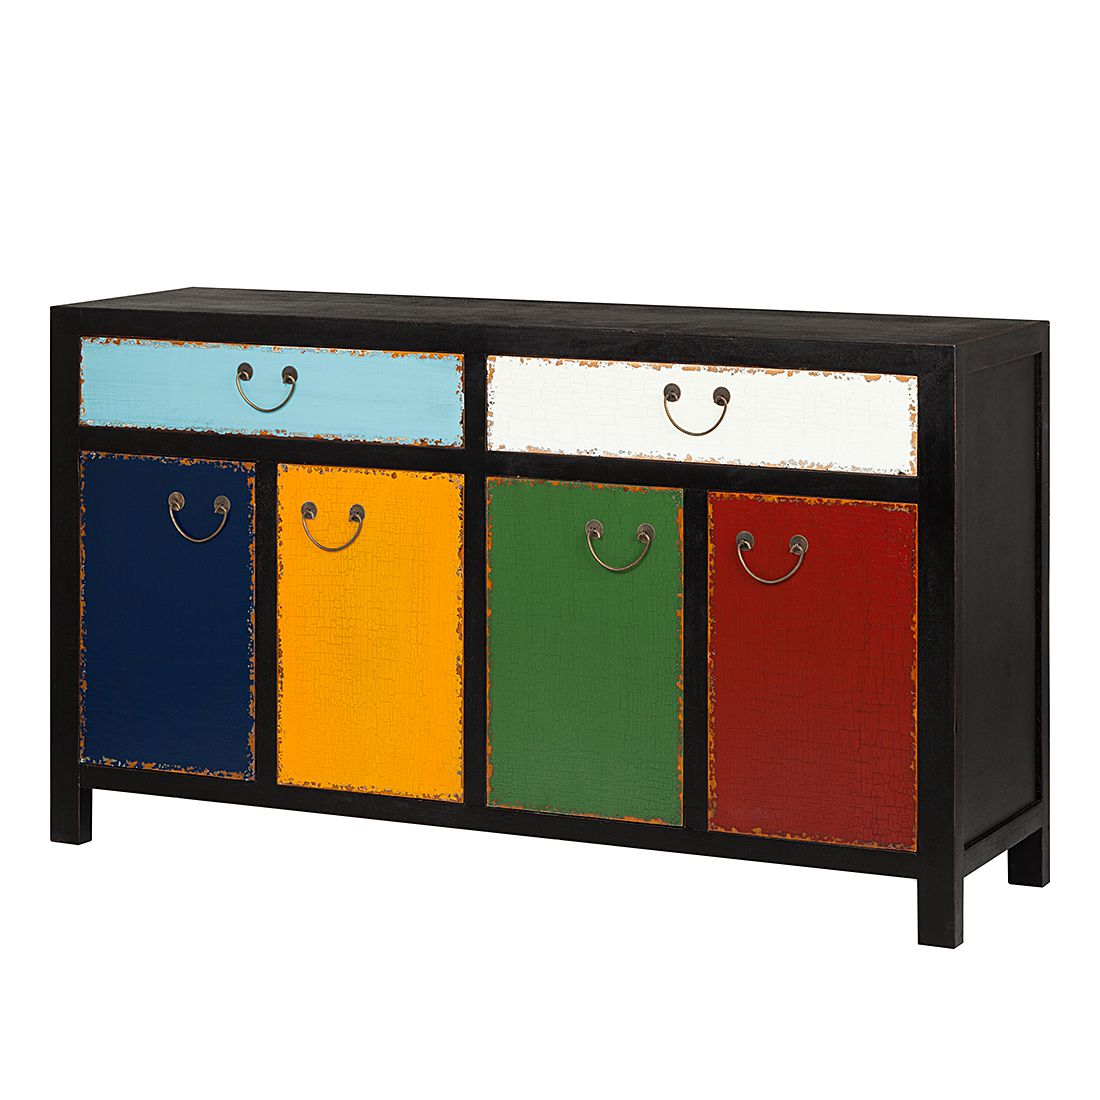 schrank tiefe 25 cm top great x cm schrank parma with schrank tiefe cm with schrank tiefe 25 cm. Black Bedroom Furniture Sets. Home Design Ideas